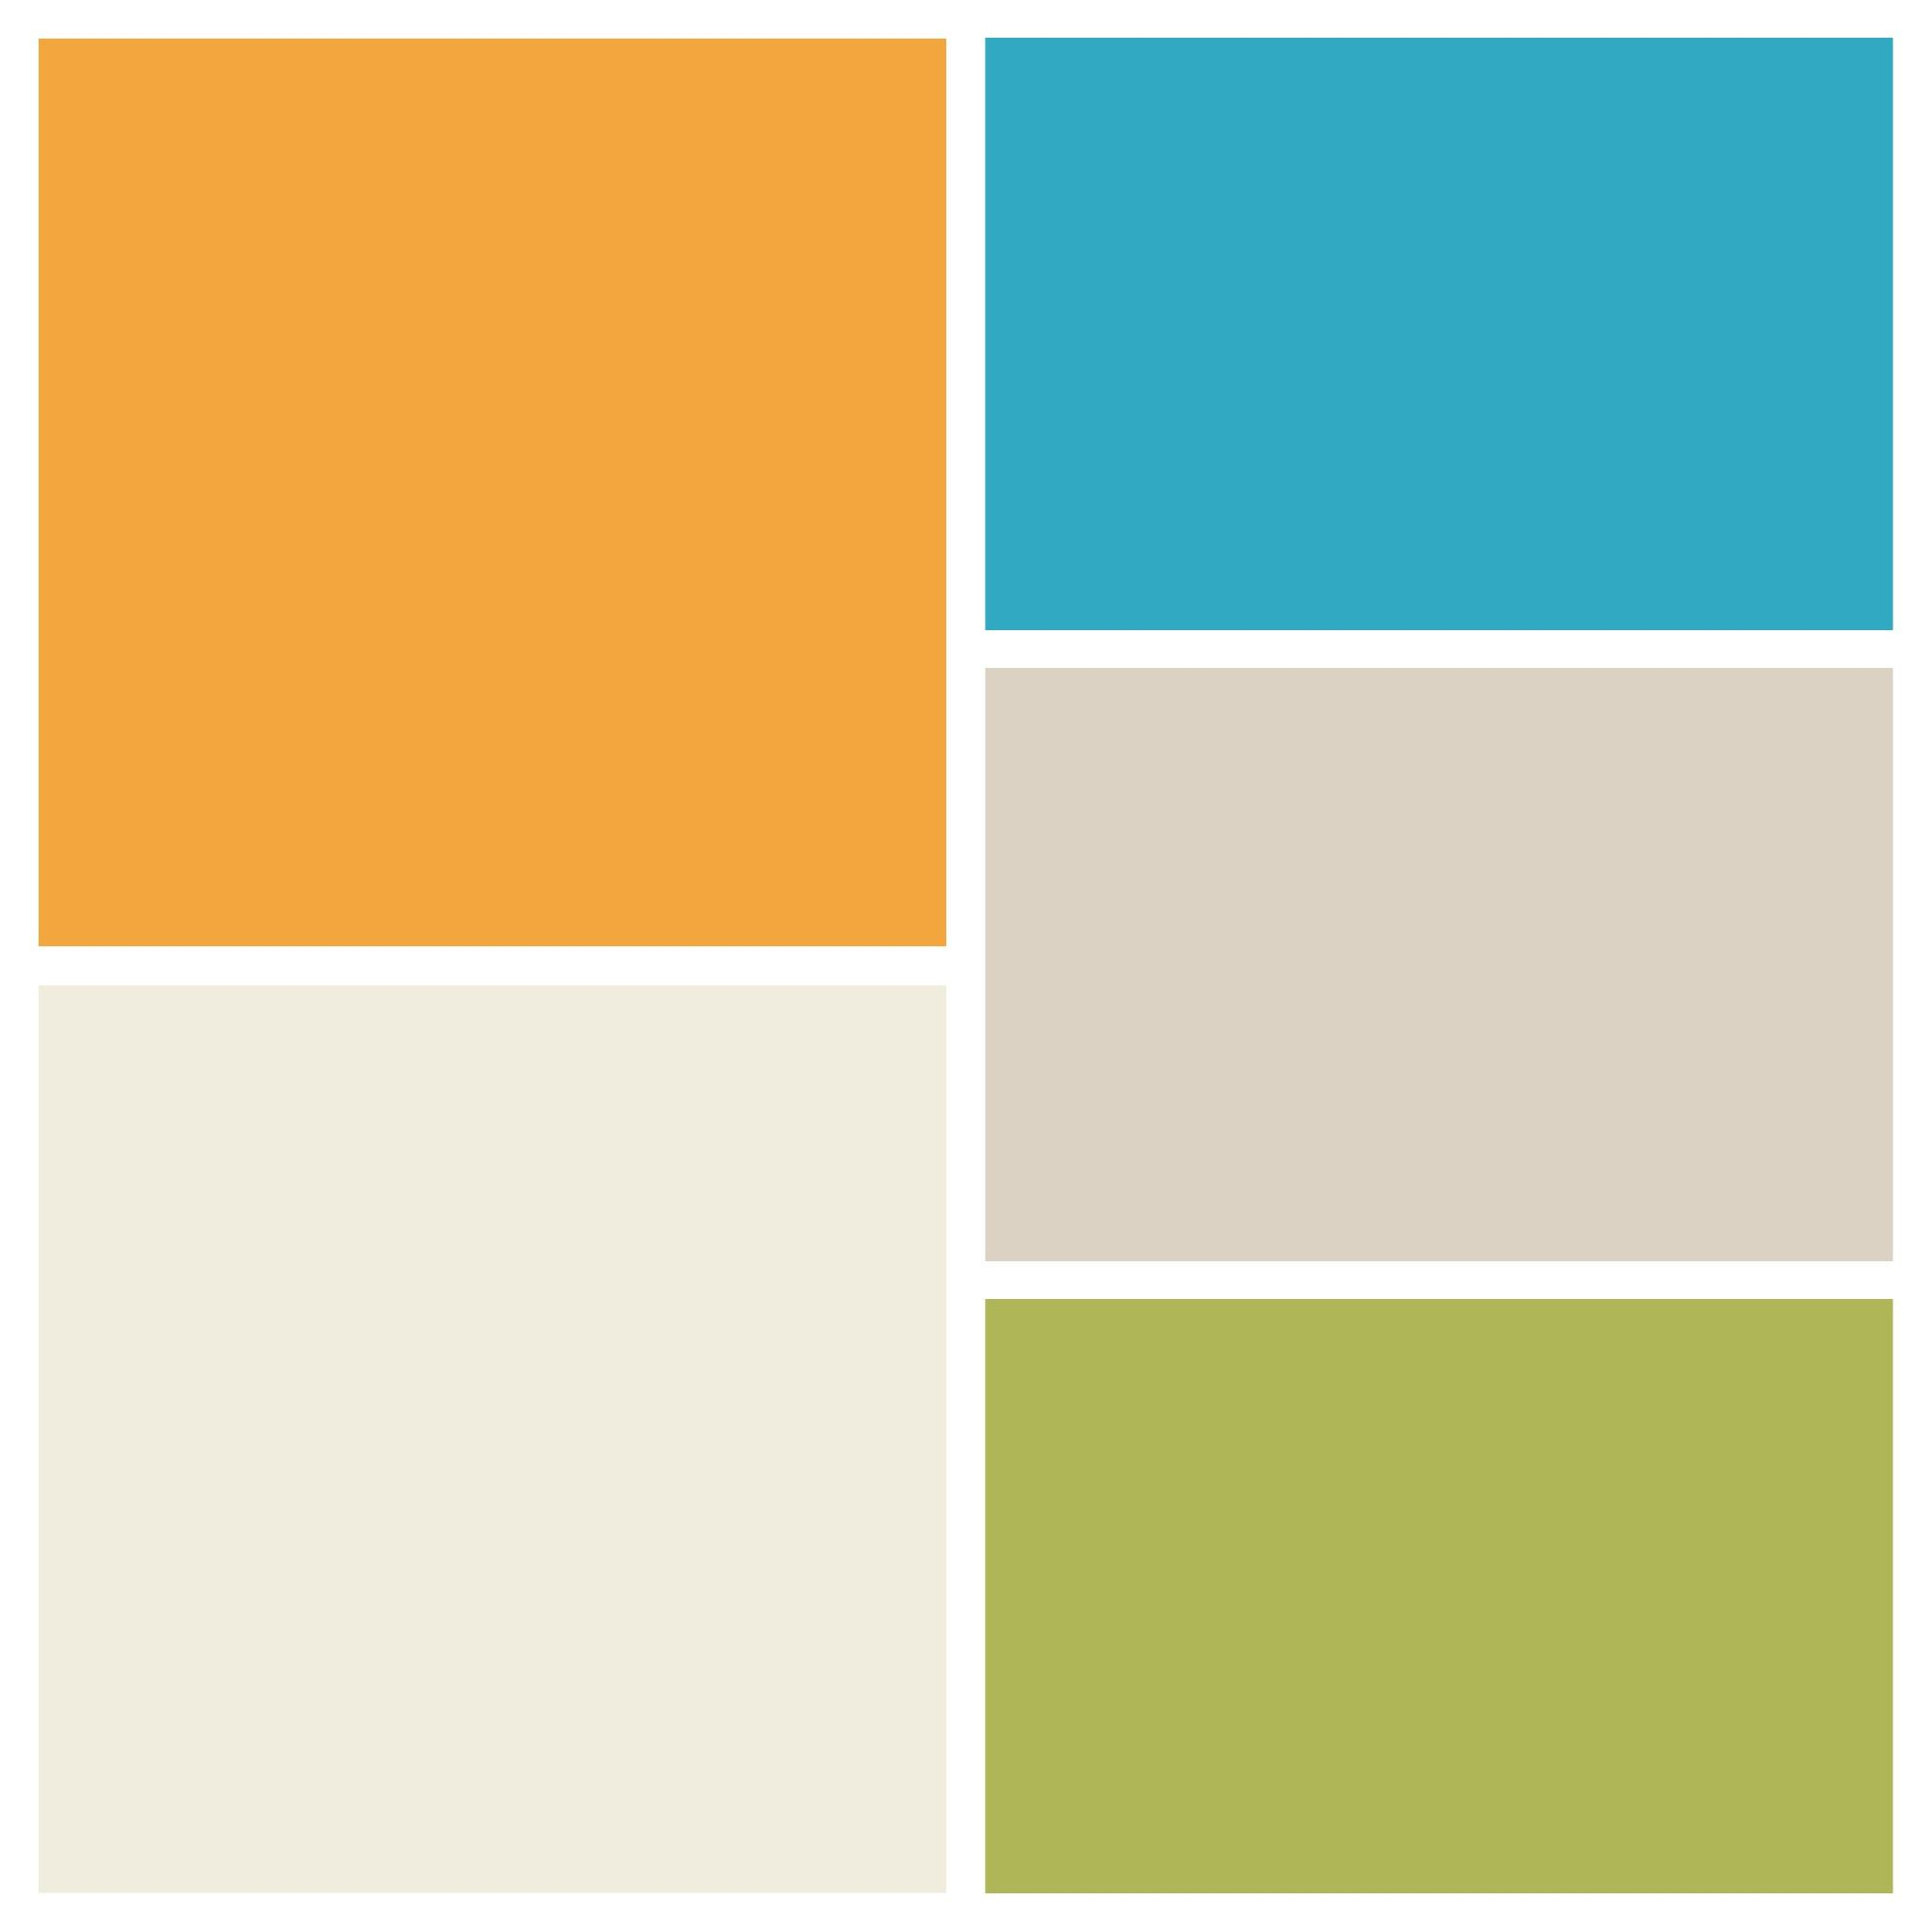 Sherwin Williams Stock Quote Colors For Our House Sherwin Williams Colors Calypso Parakeet